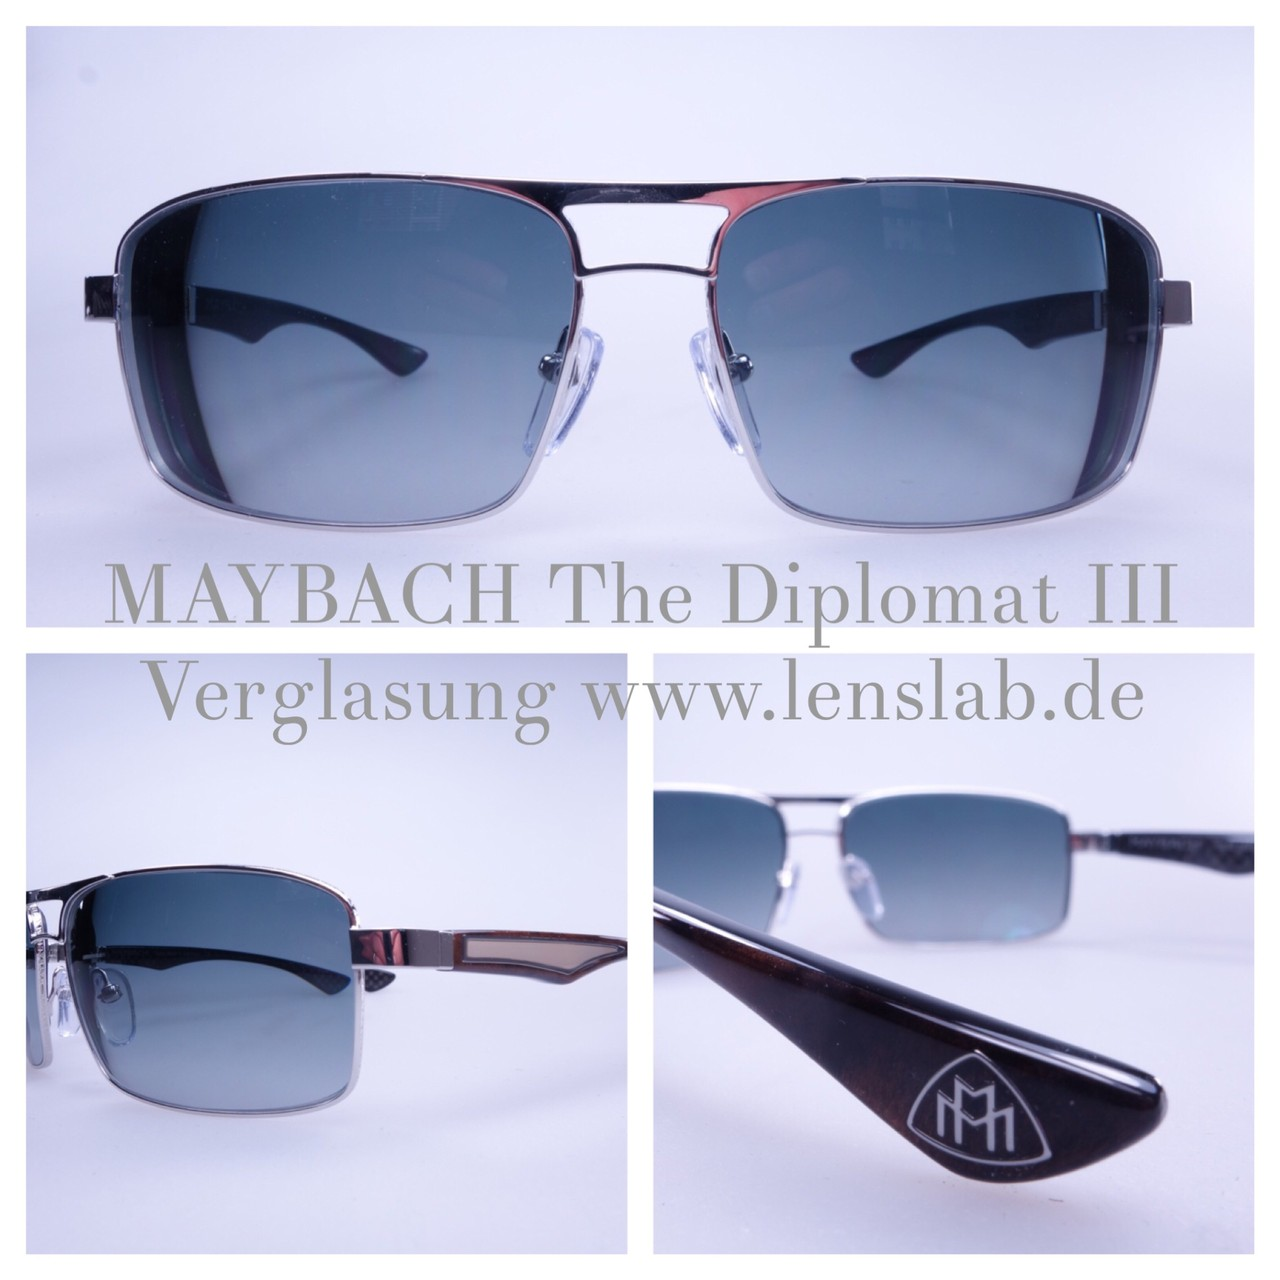 MAYBACH The Diplomat III Gläser Kurve 6.0